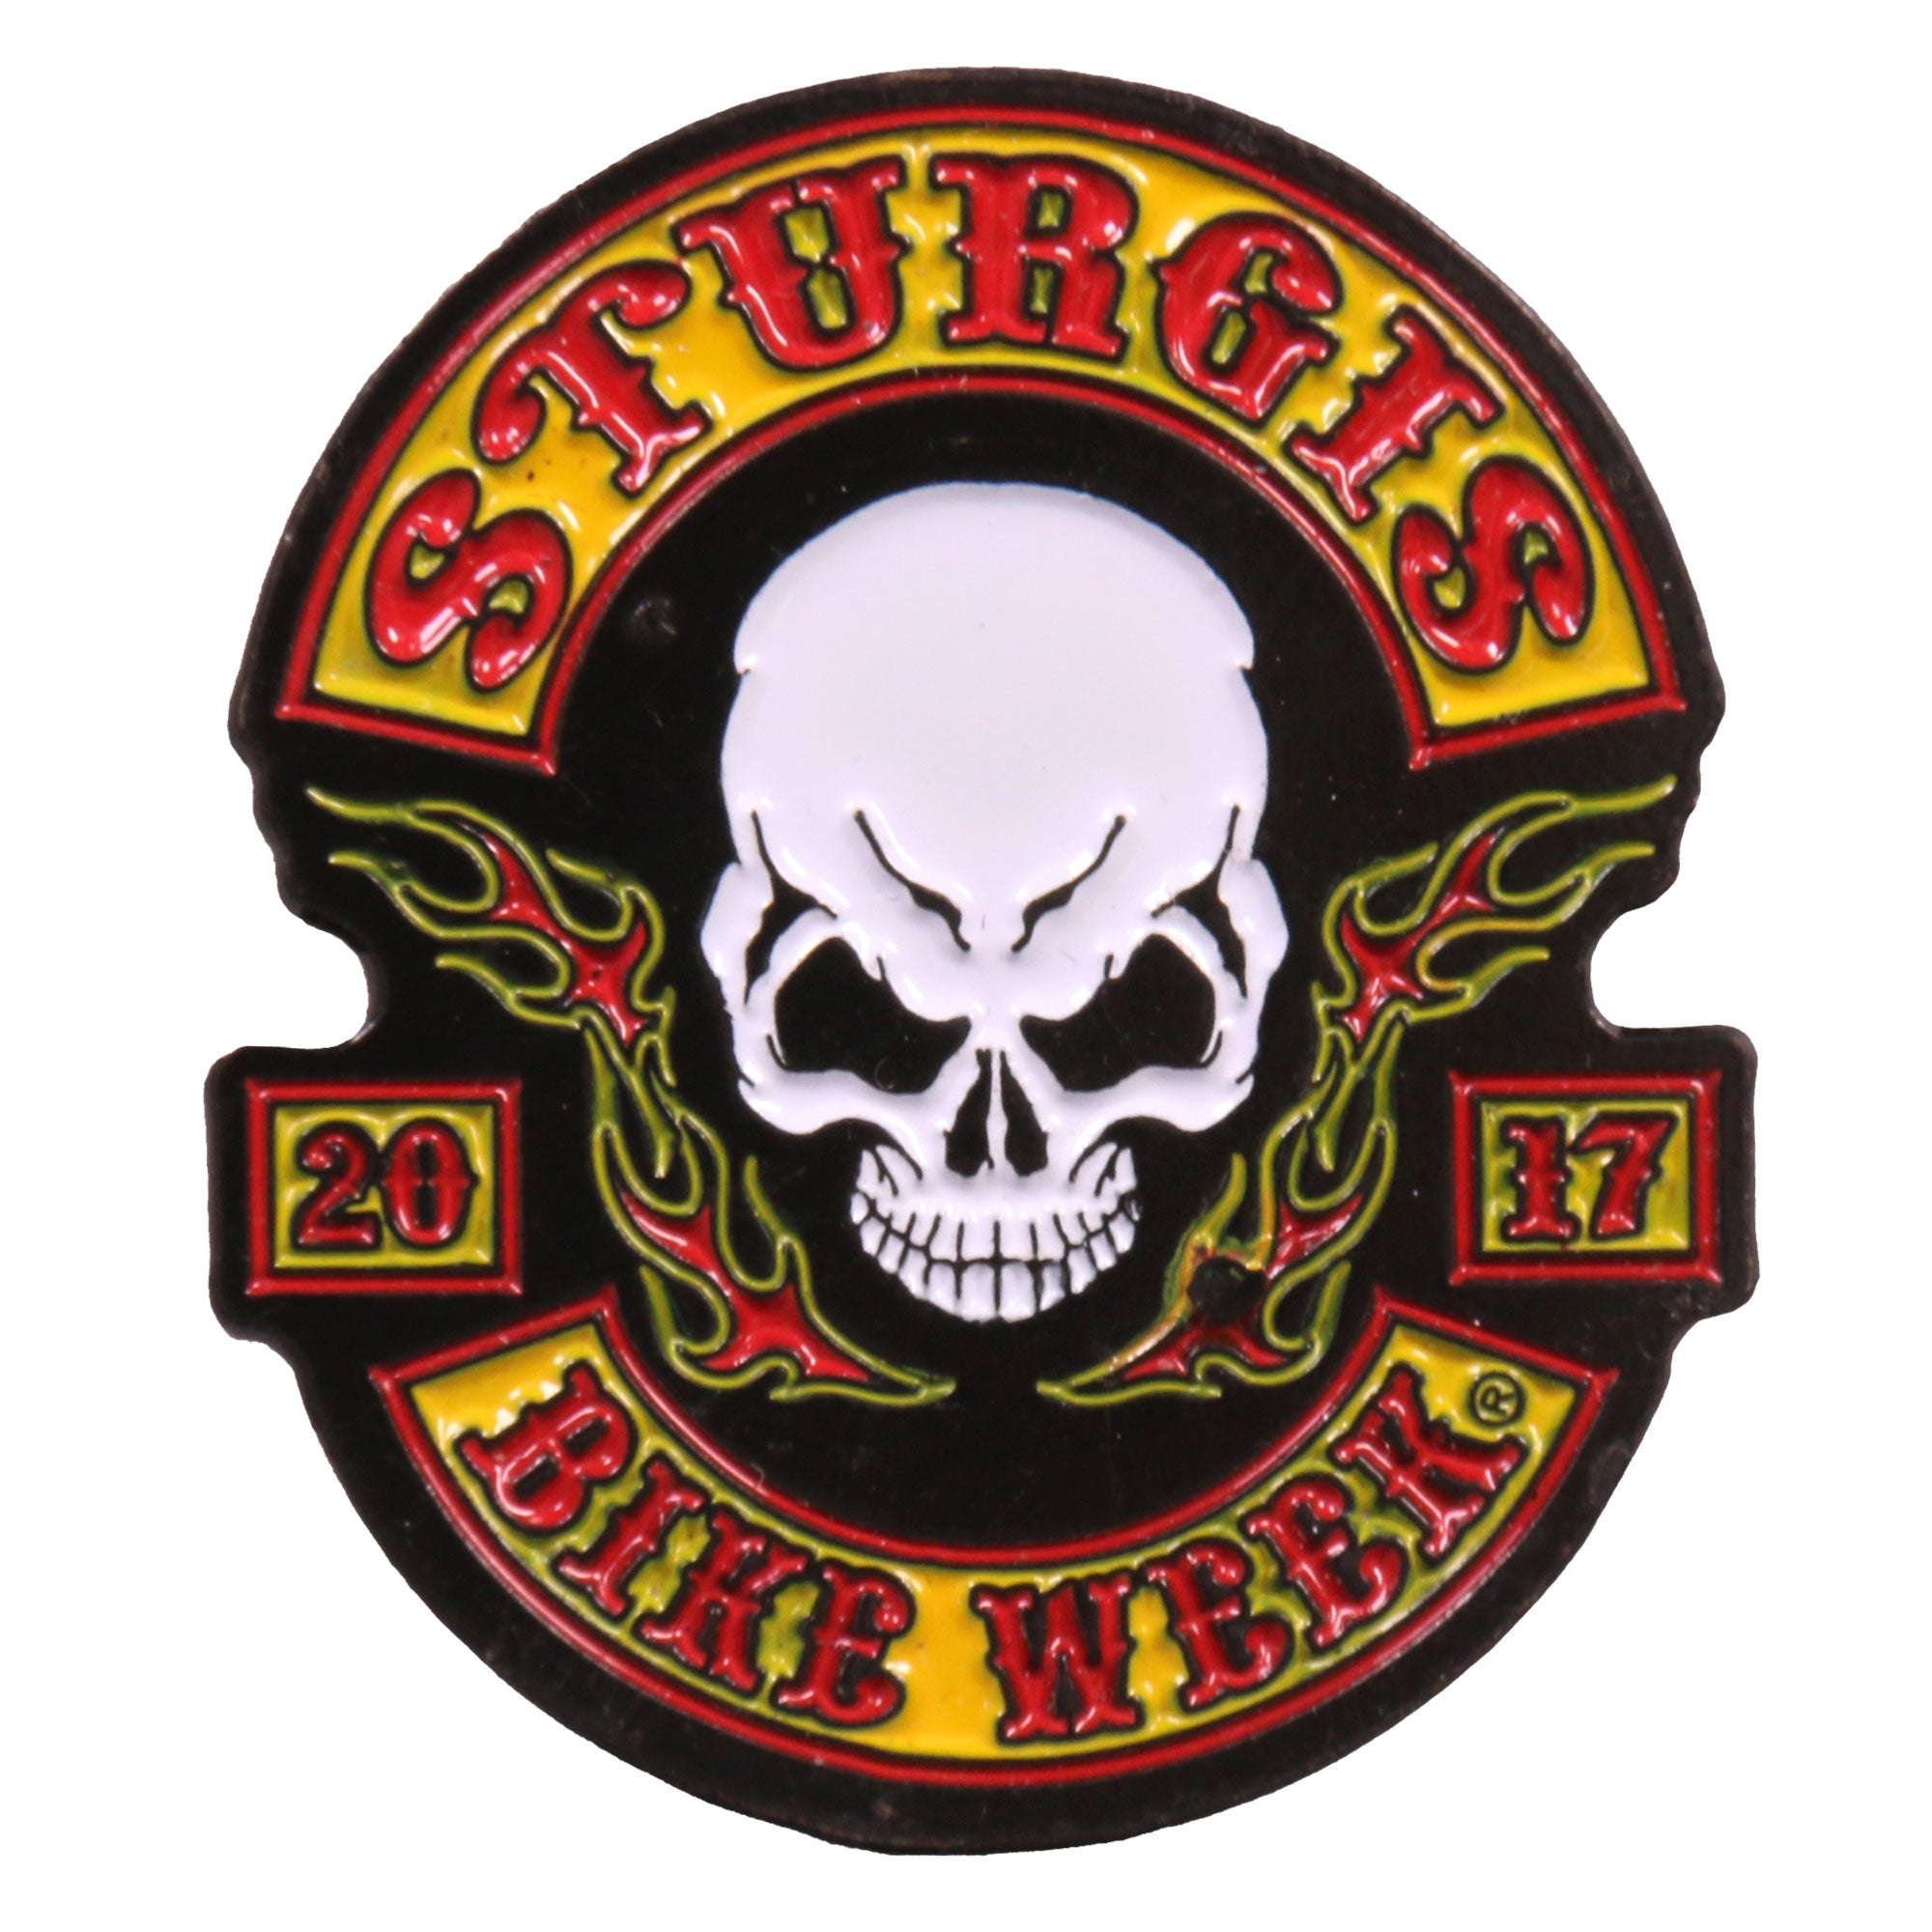 Official 2017 Sturgis Motorcycle Rally Rocker Skull Enamel Pin